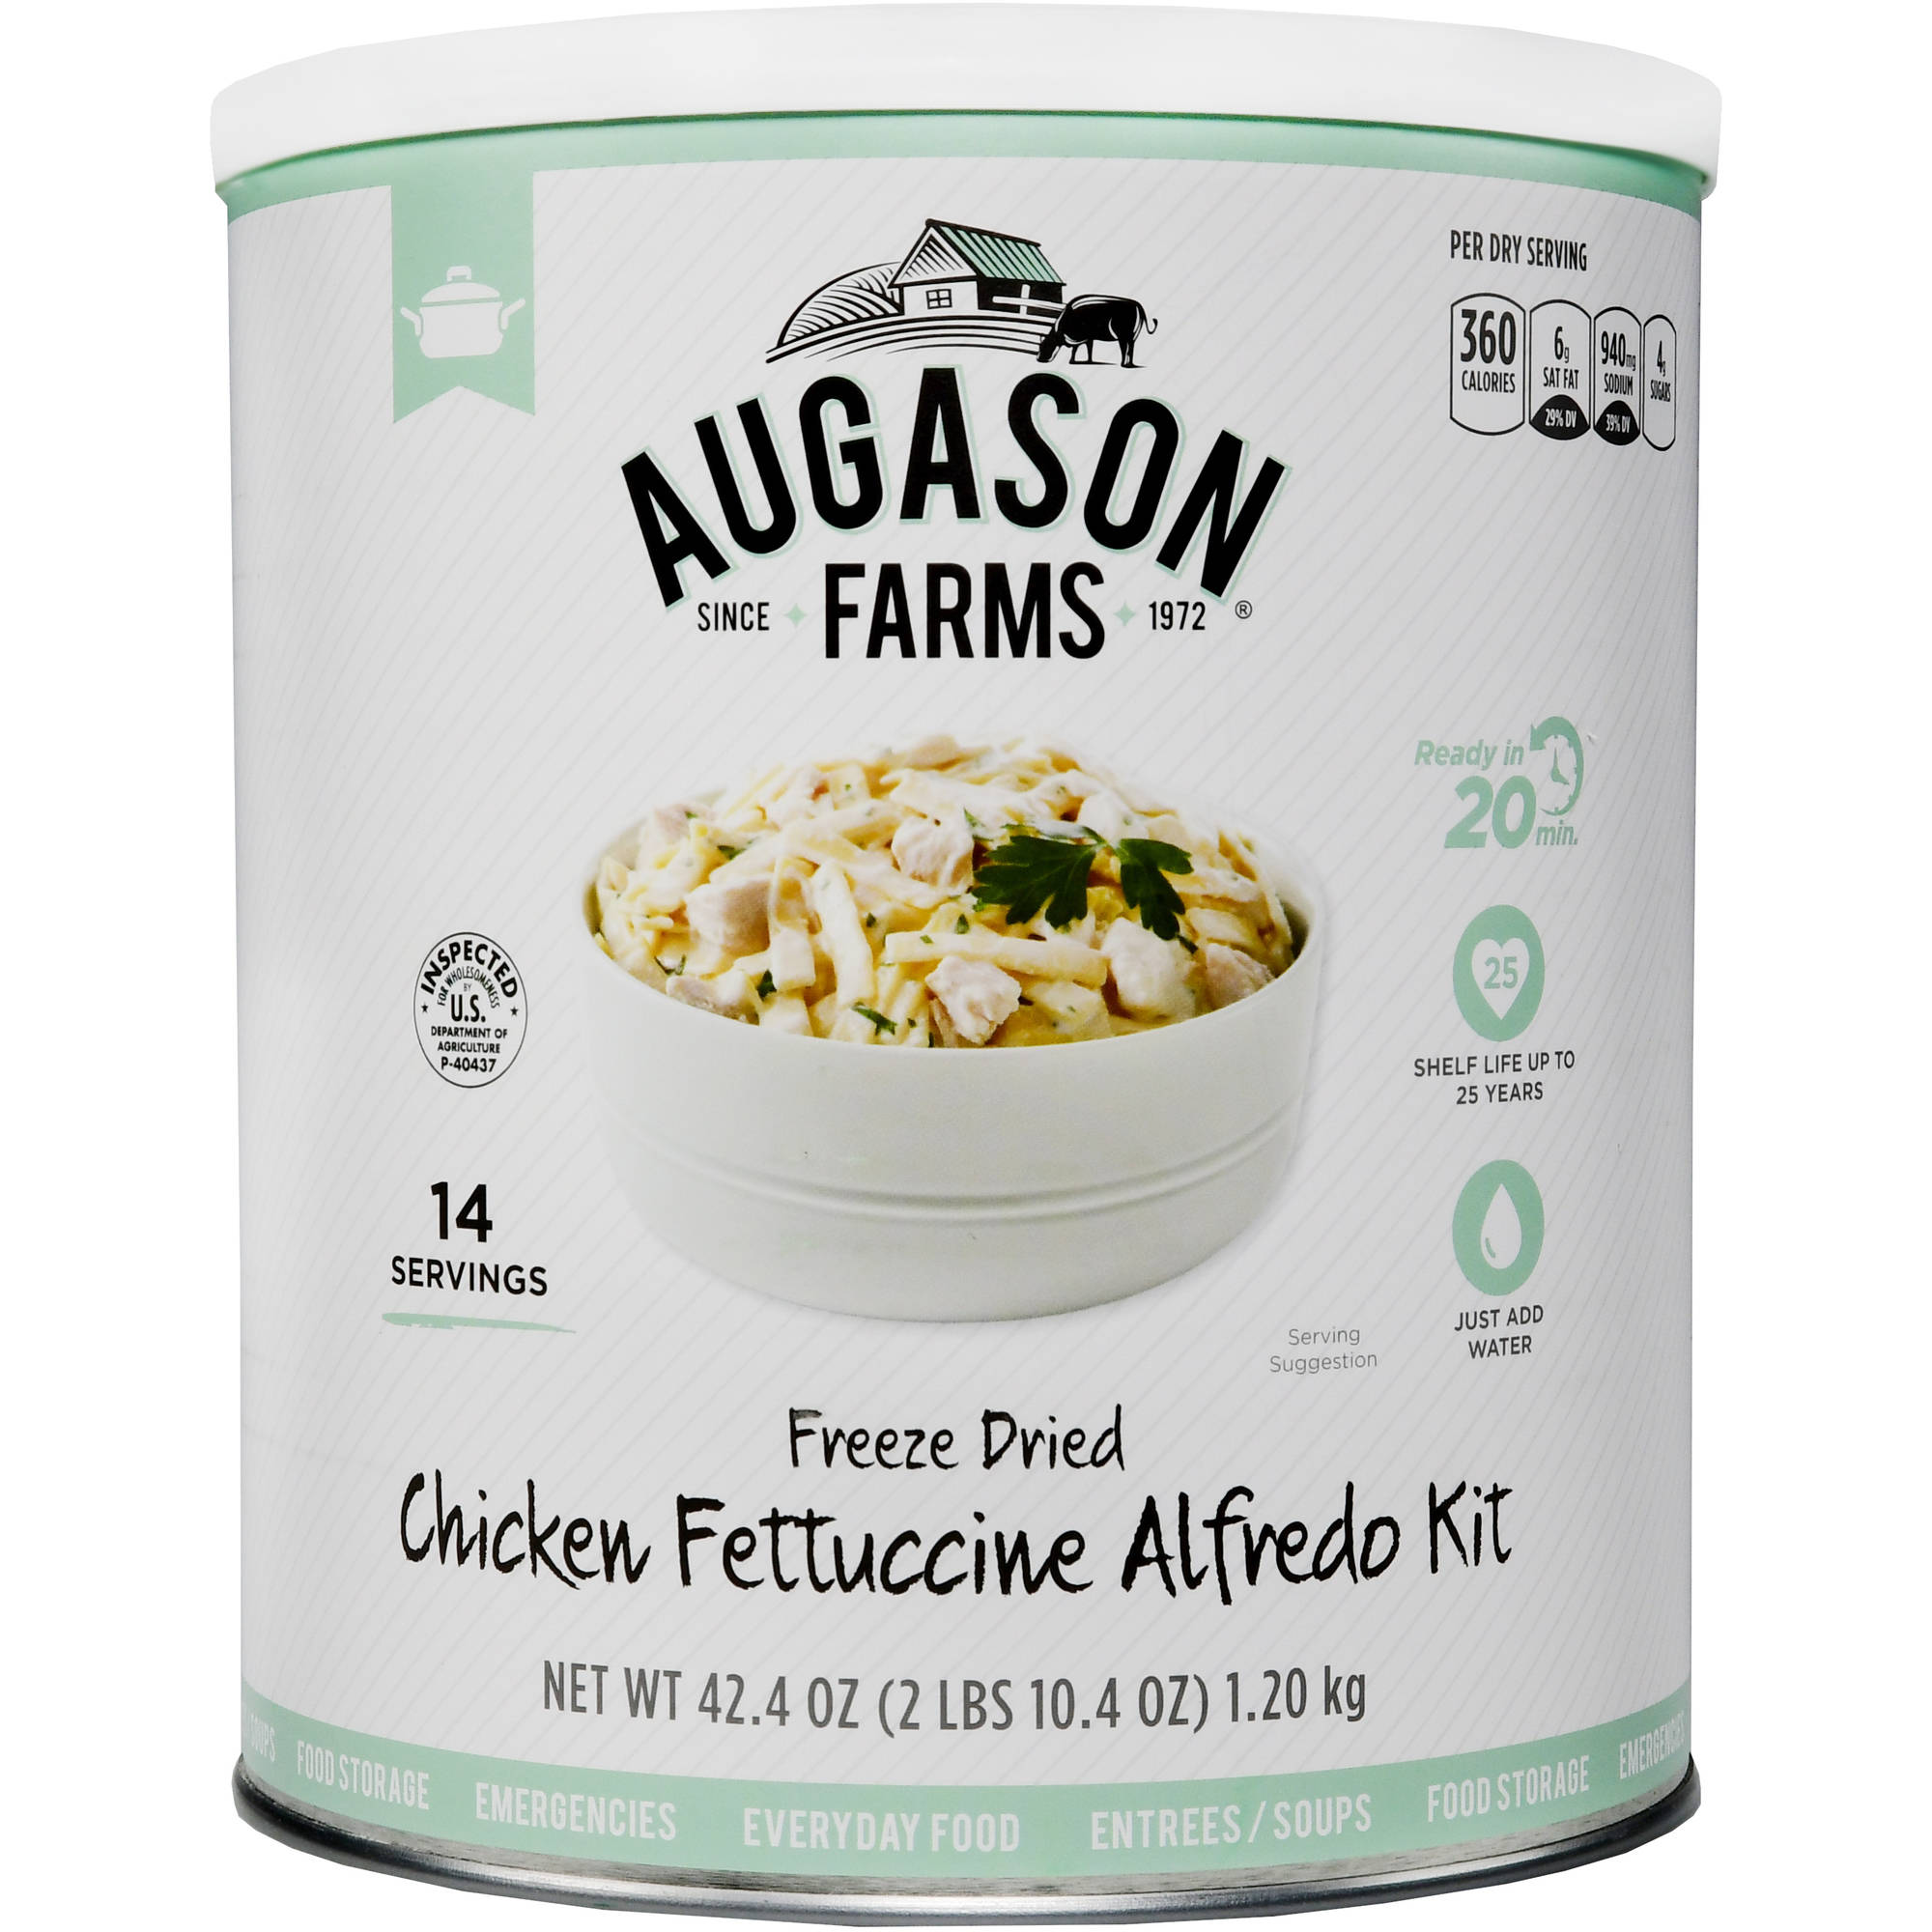 Augason Farms Emergency Food Freeze Dried Chicken Fettuccine Alfredo Meal Kit, 42.4 oz by Generic